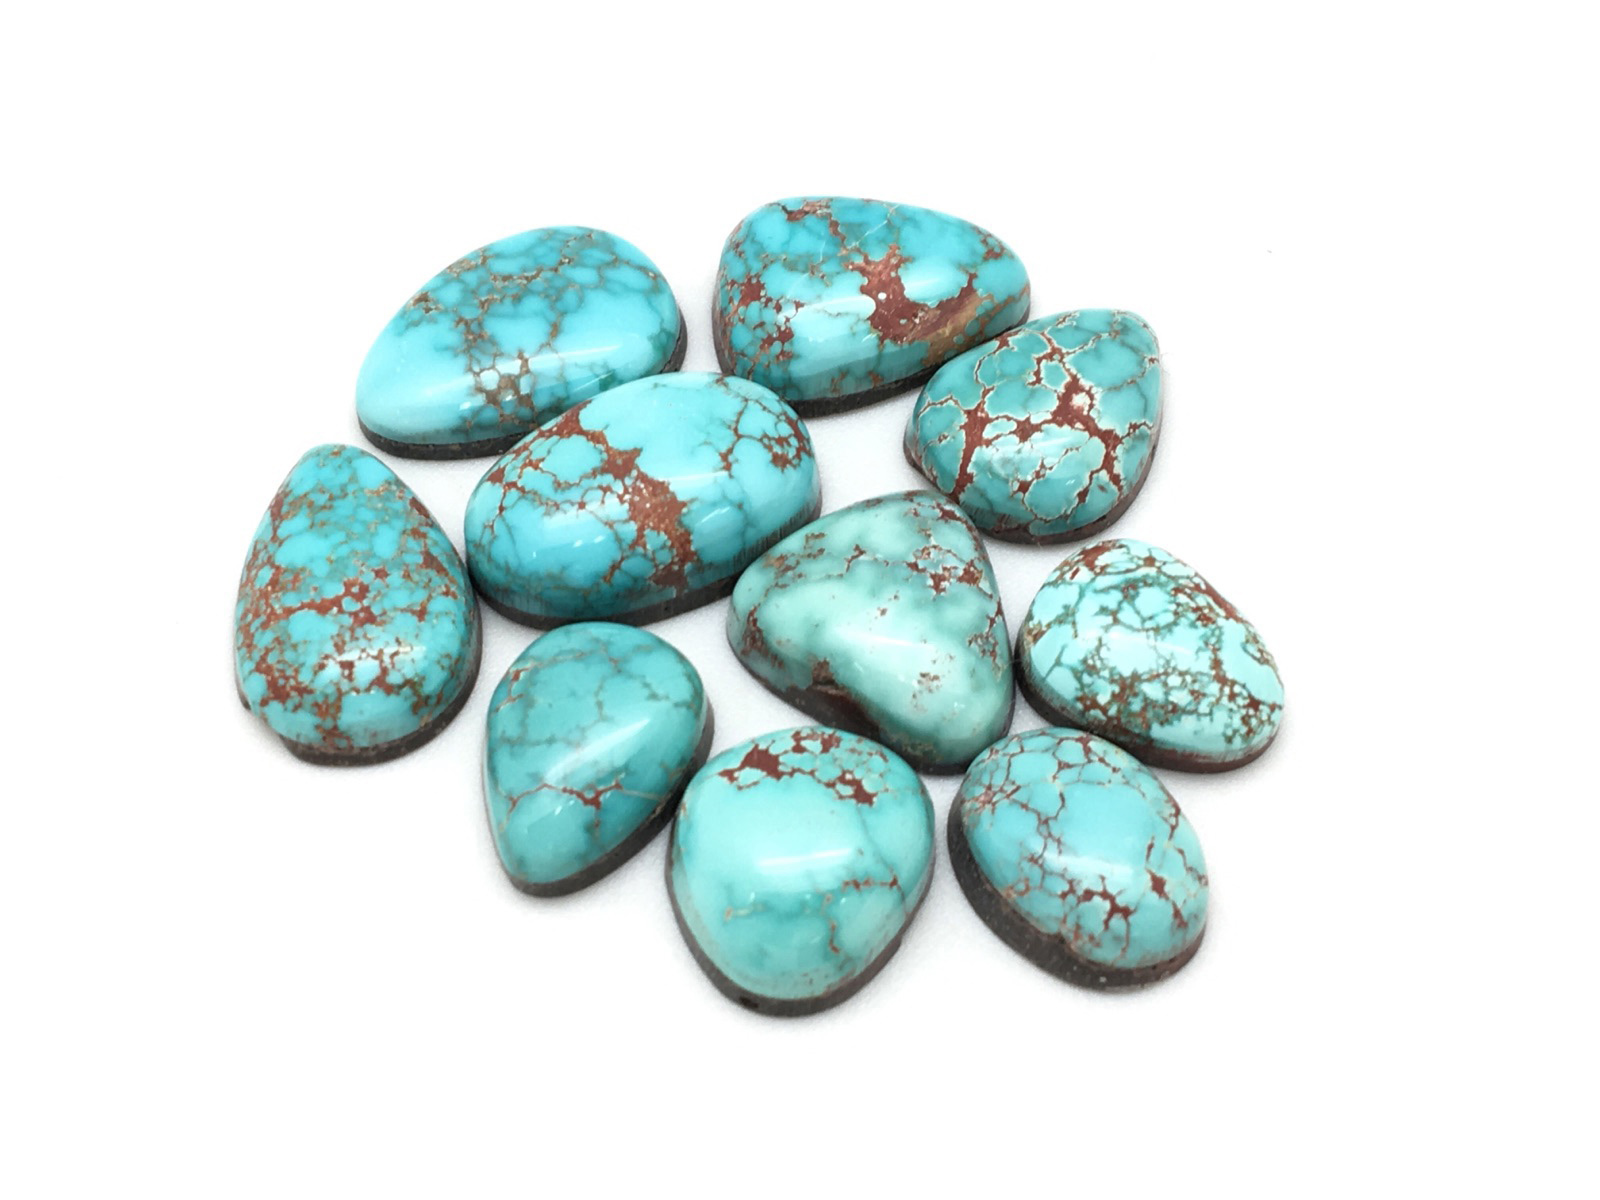 BLUE CARICO LAKE TURQUOISE CABS FROM NEVADA